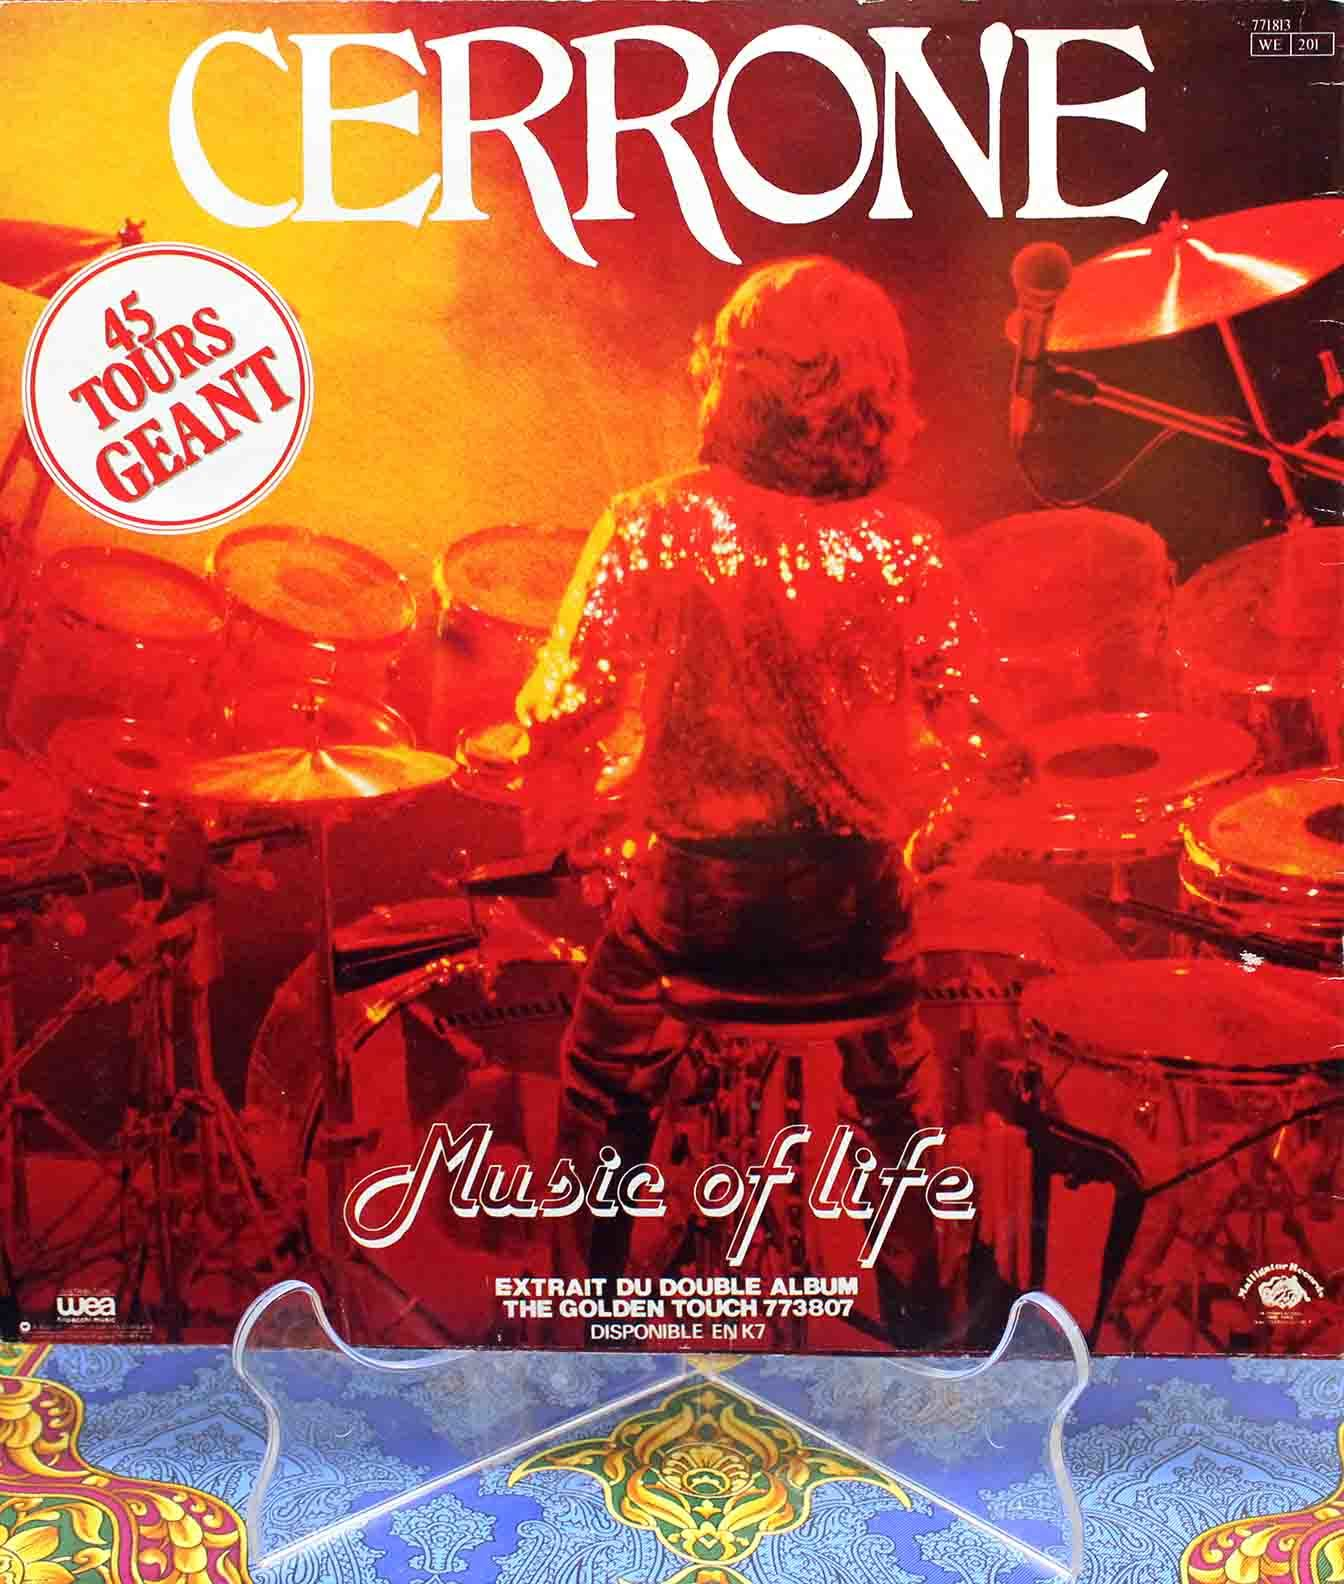 Cerrone Music Of Life 01